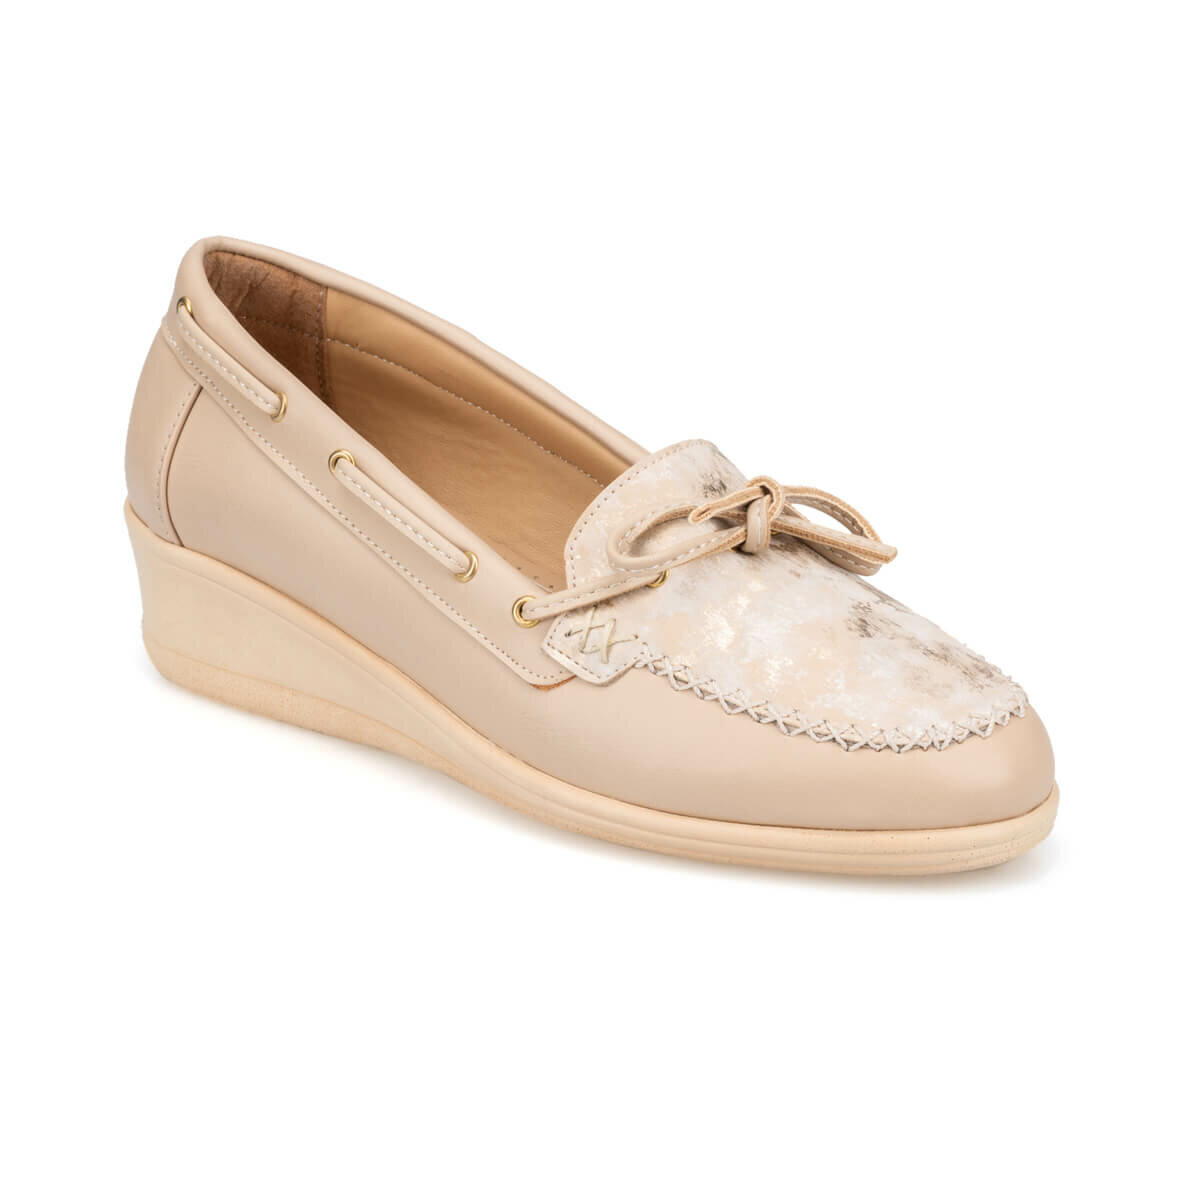 FLO 91. 150663.Z Beige Women 'S Shoes Polaris